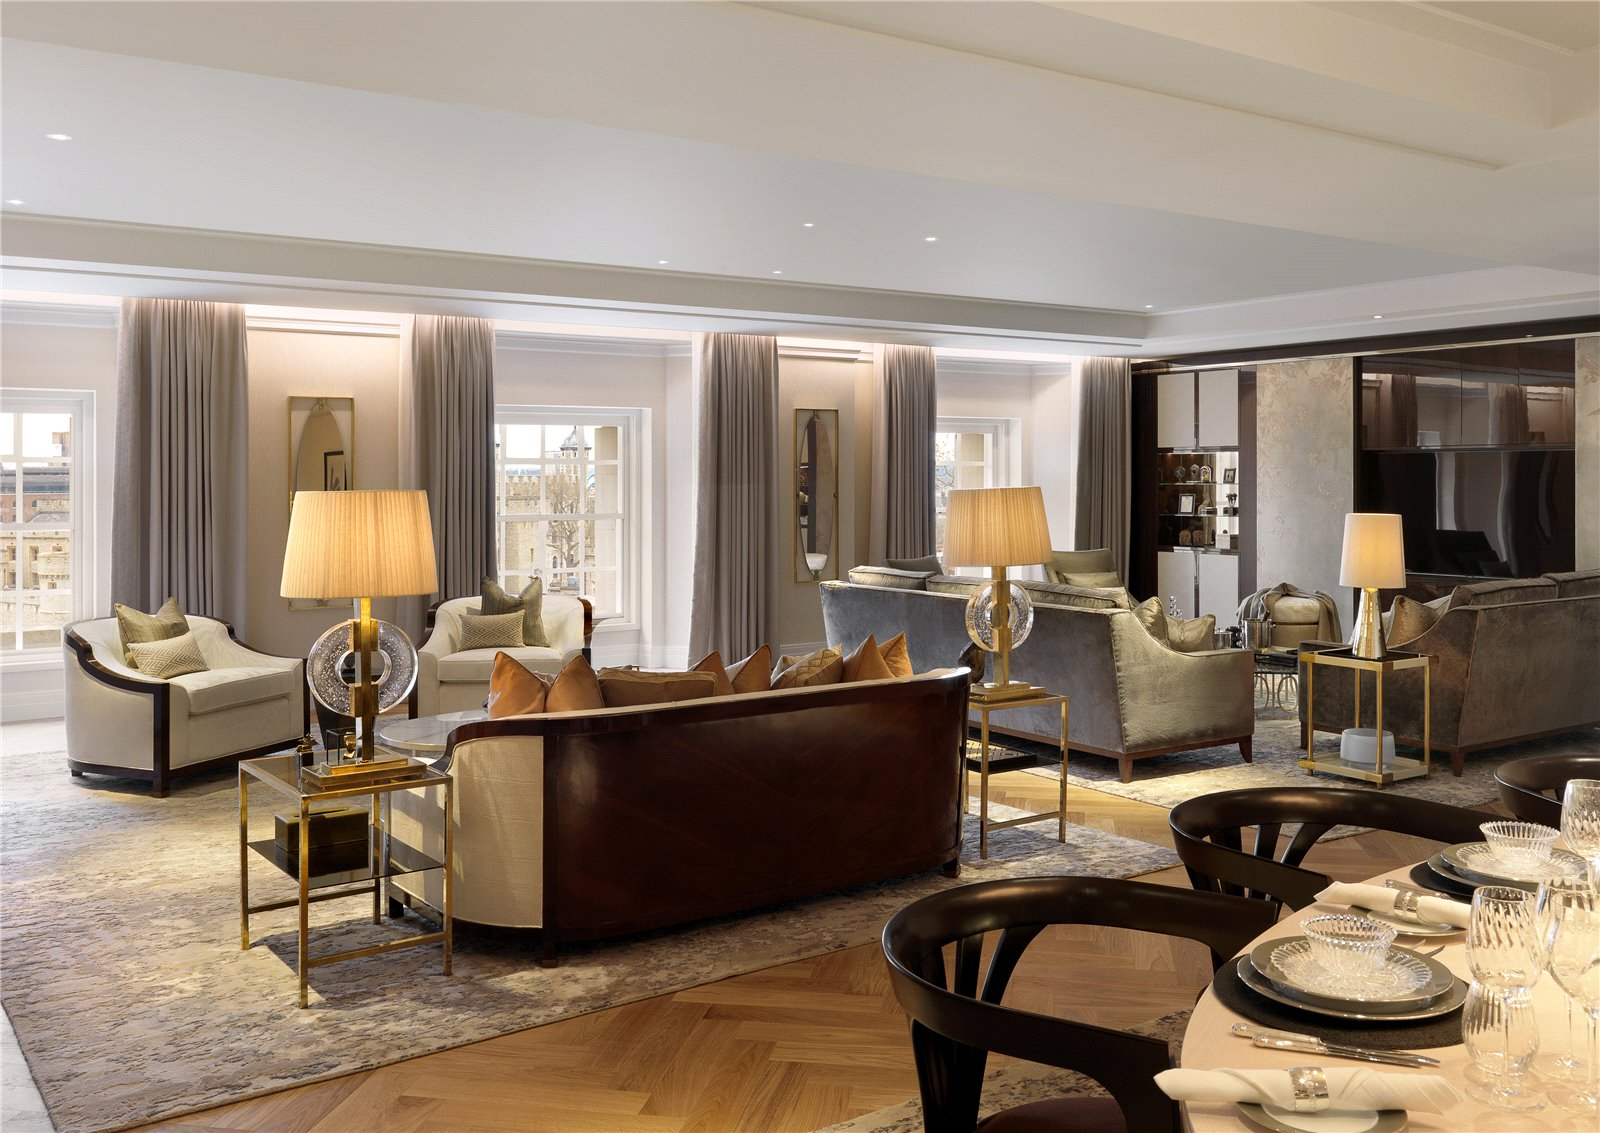 Apartment for Rent at Trinity Square, Tower Hill, London, EC3N Trinity Square, Tower Hill, London, EC3N